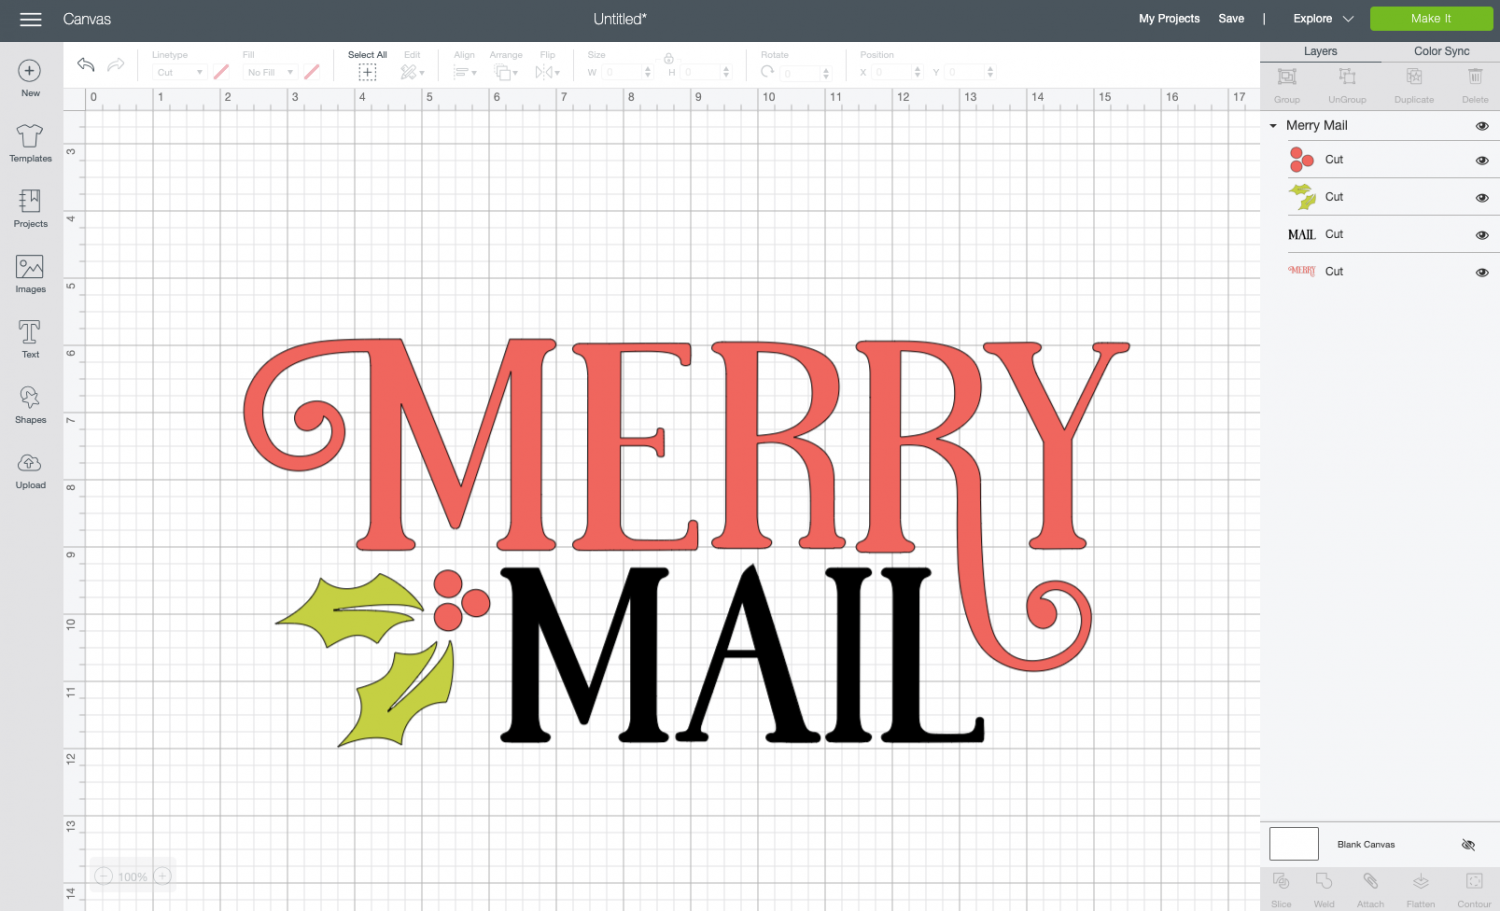 Cricut Design Space: Uploaded Merry Mail file